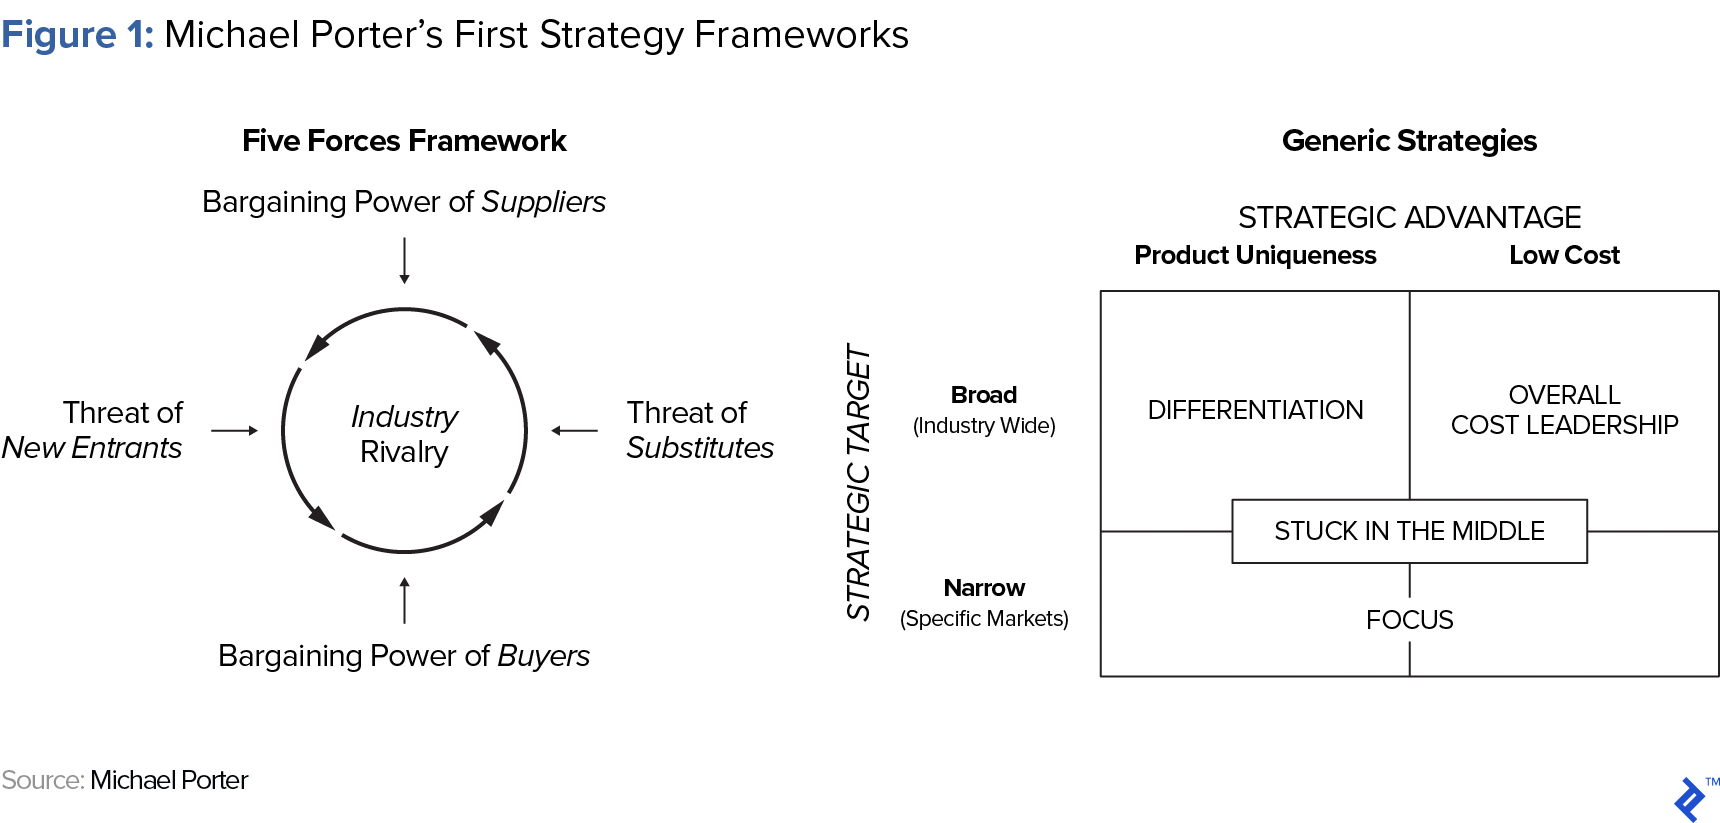 Figure 1: Michael Porter's First Strategy Frameworks